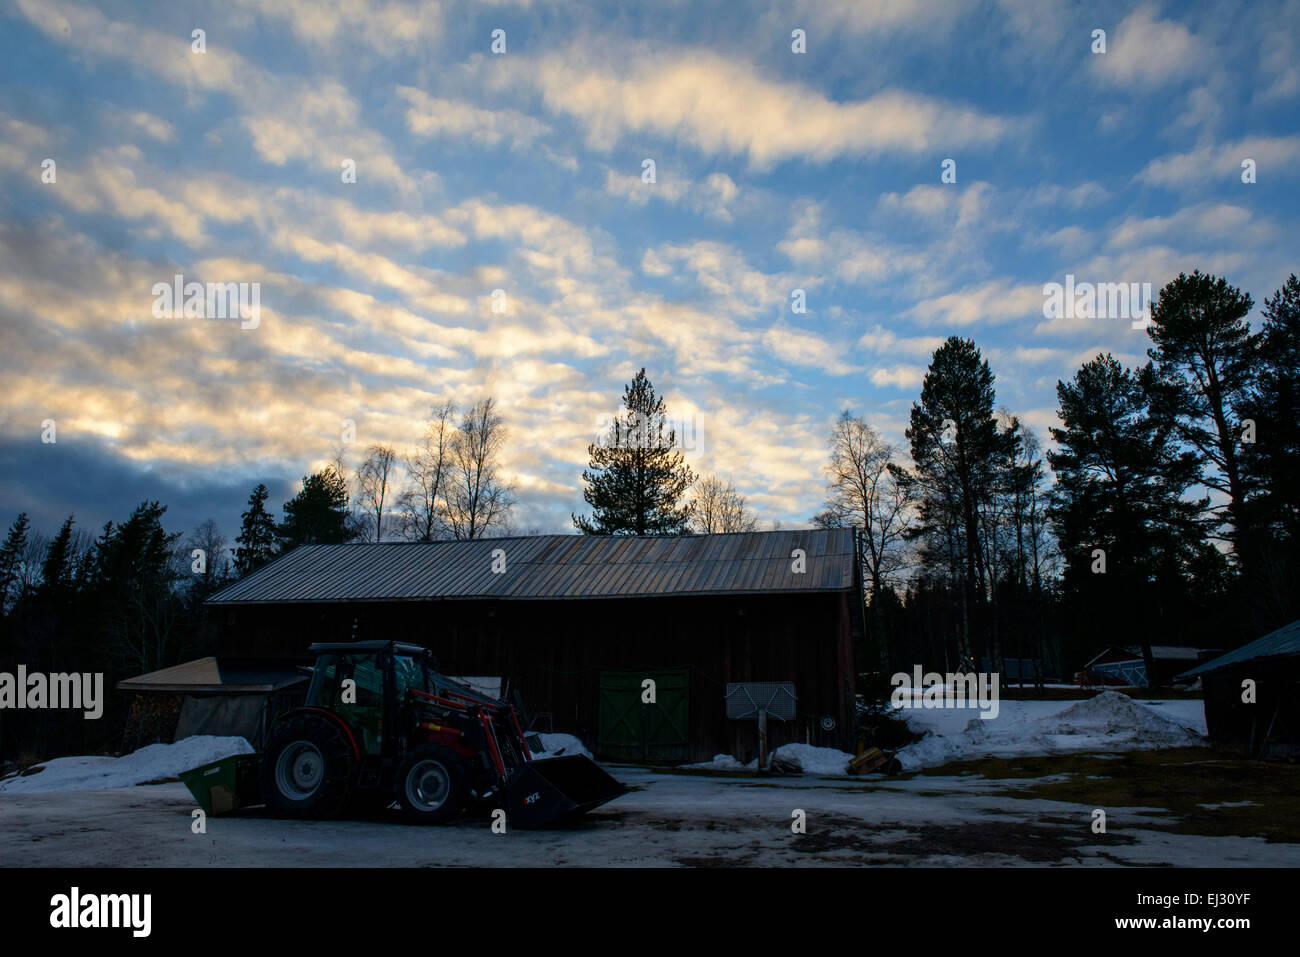 Northern Sweden countryside - Stock Image